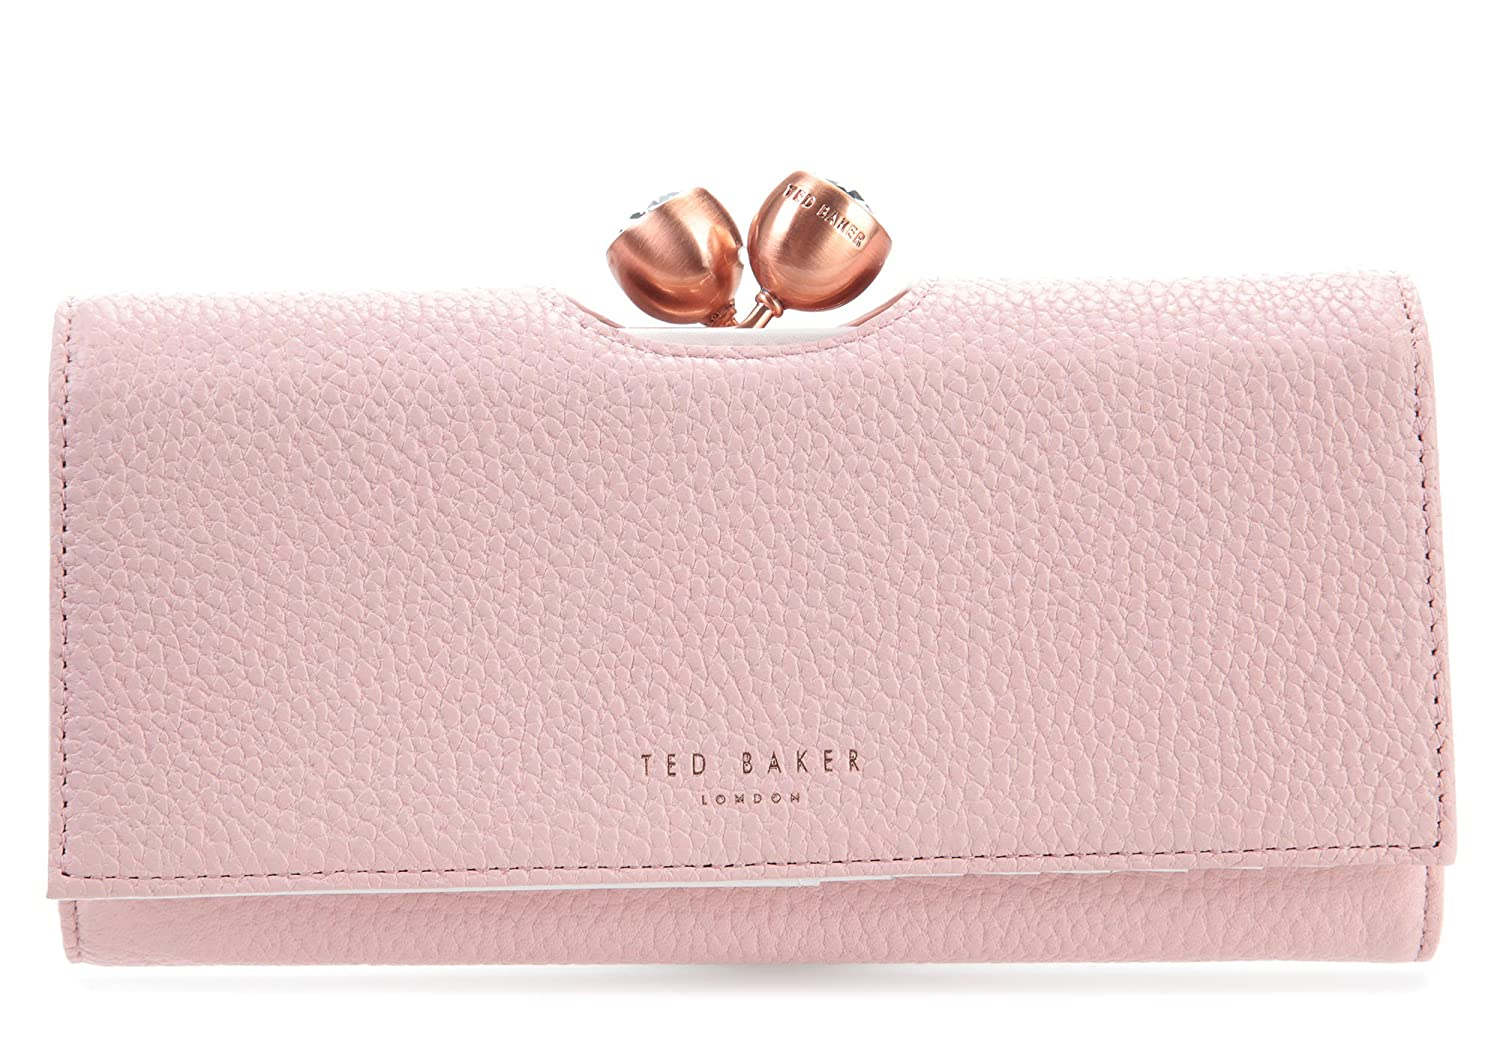 2437e59876 Ted Baker Muscovy Wallet rose: Amazon.co.uk: Luggage